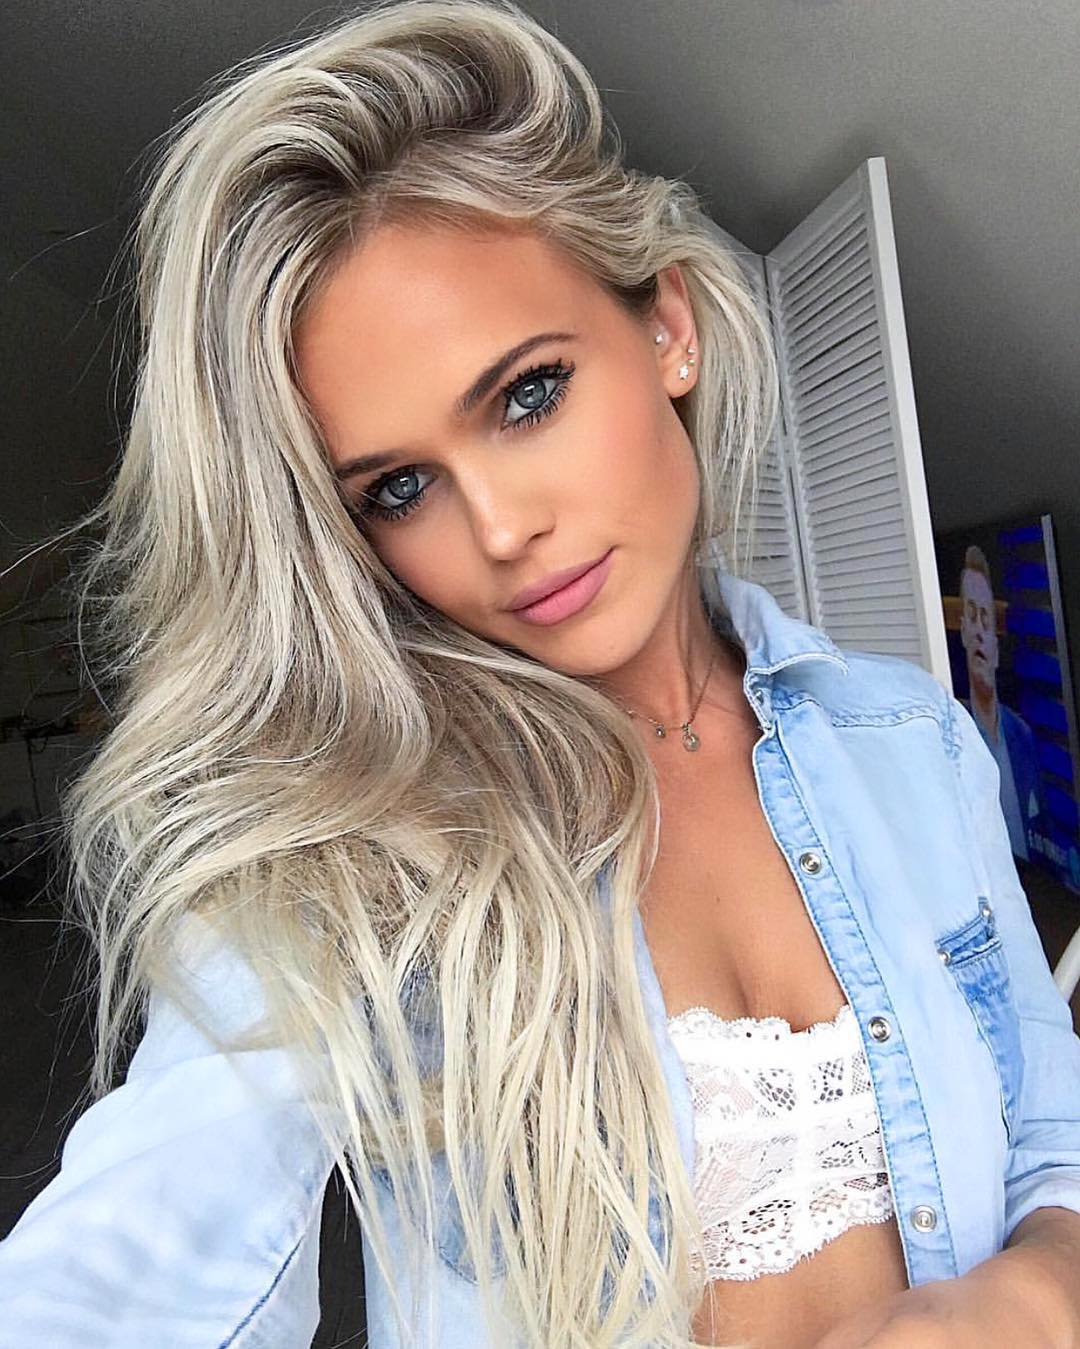 It S Model Home Monday And We Re Loving This Look At: HILDE OSLAND IS TABLOID TRENDING